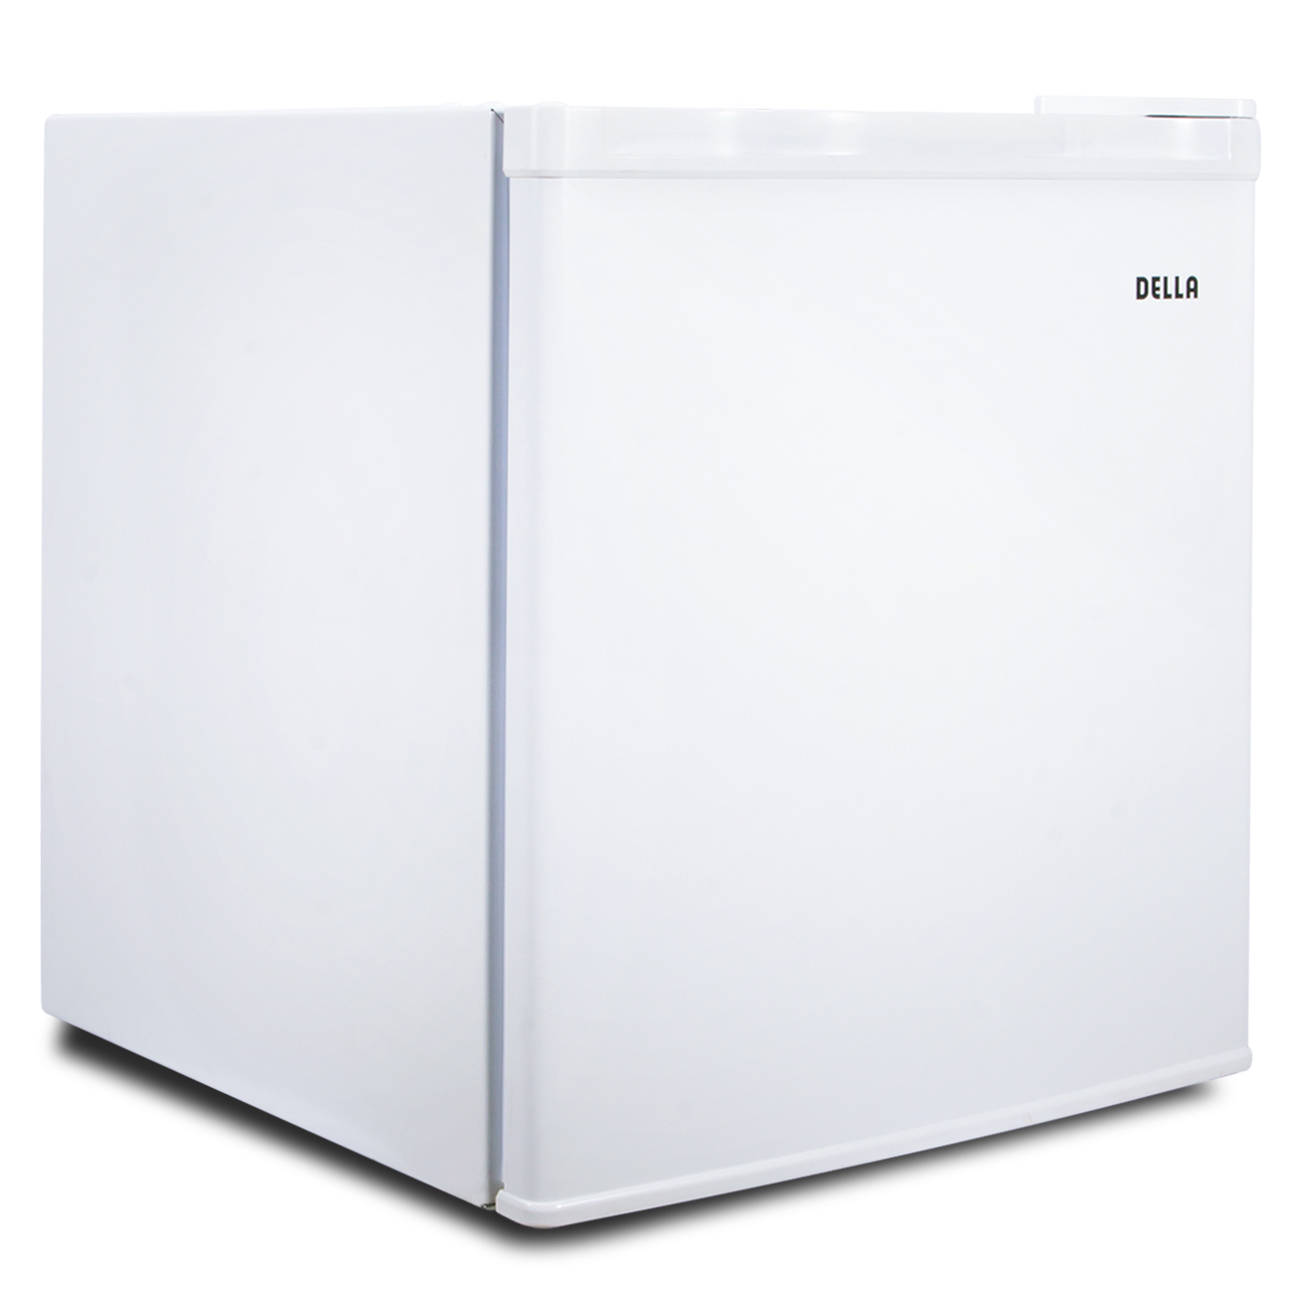 Della Portable Mini FridgeUpright Mini Refrigerator Freezer 1.1 Cubic Feet  Stainless Steel White Dorm Home